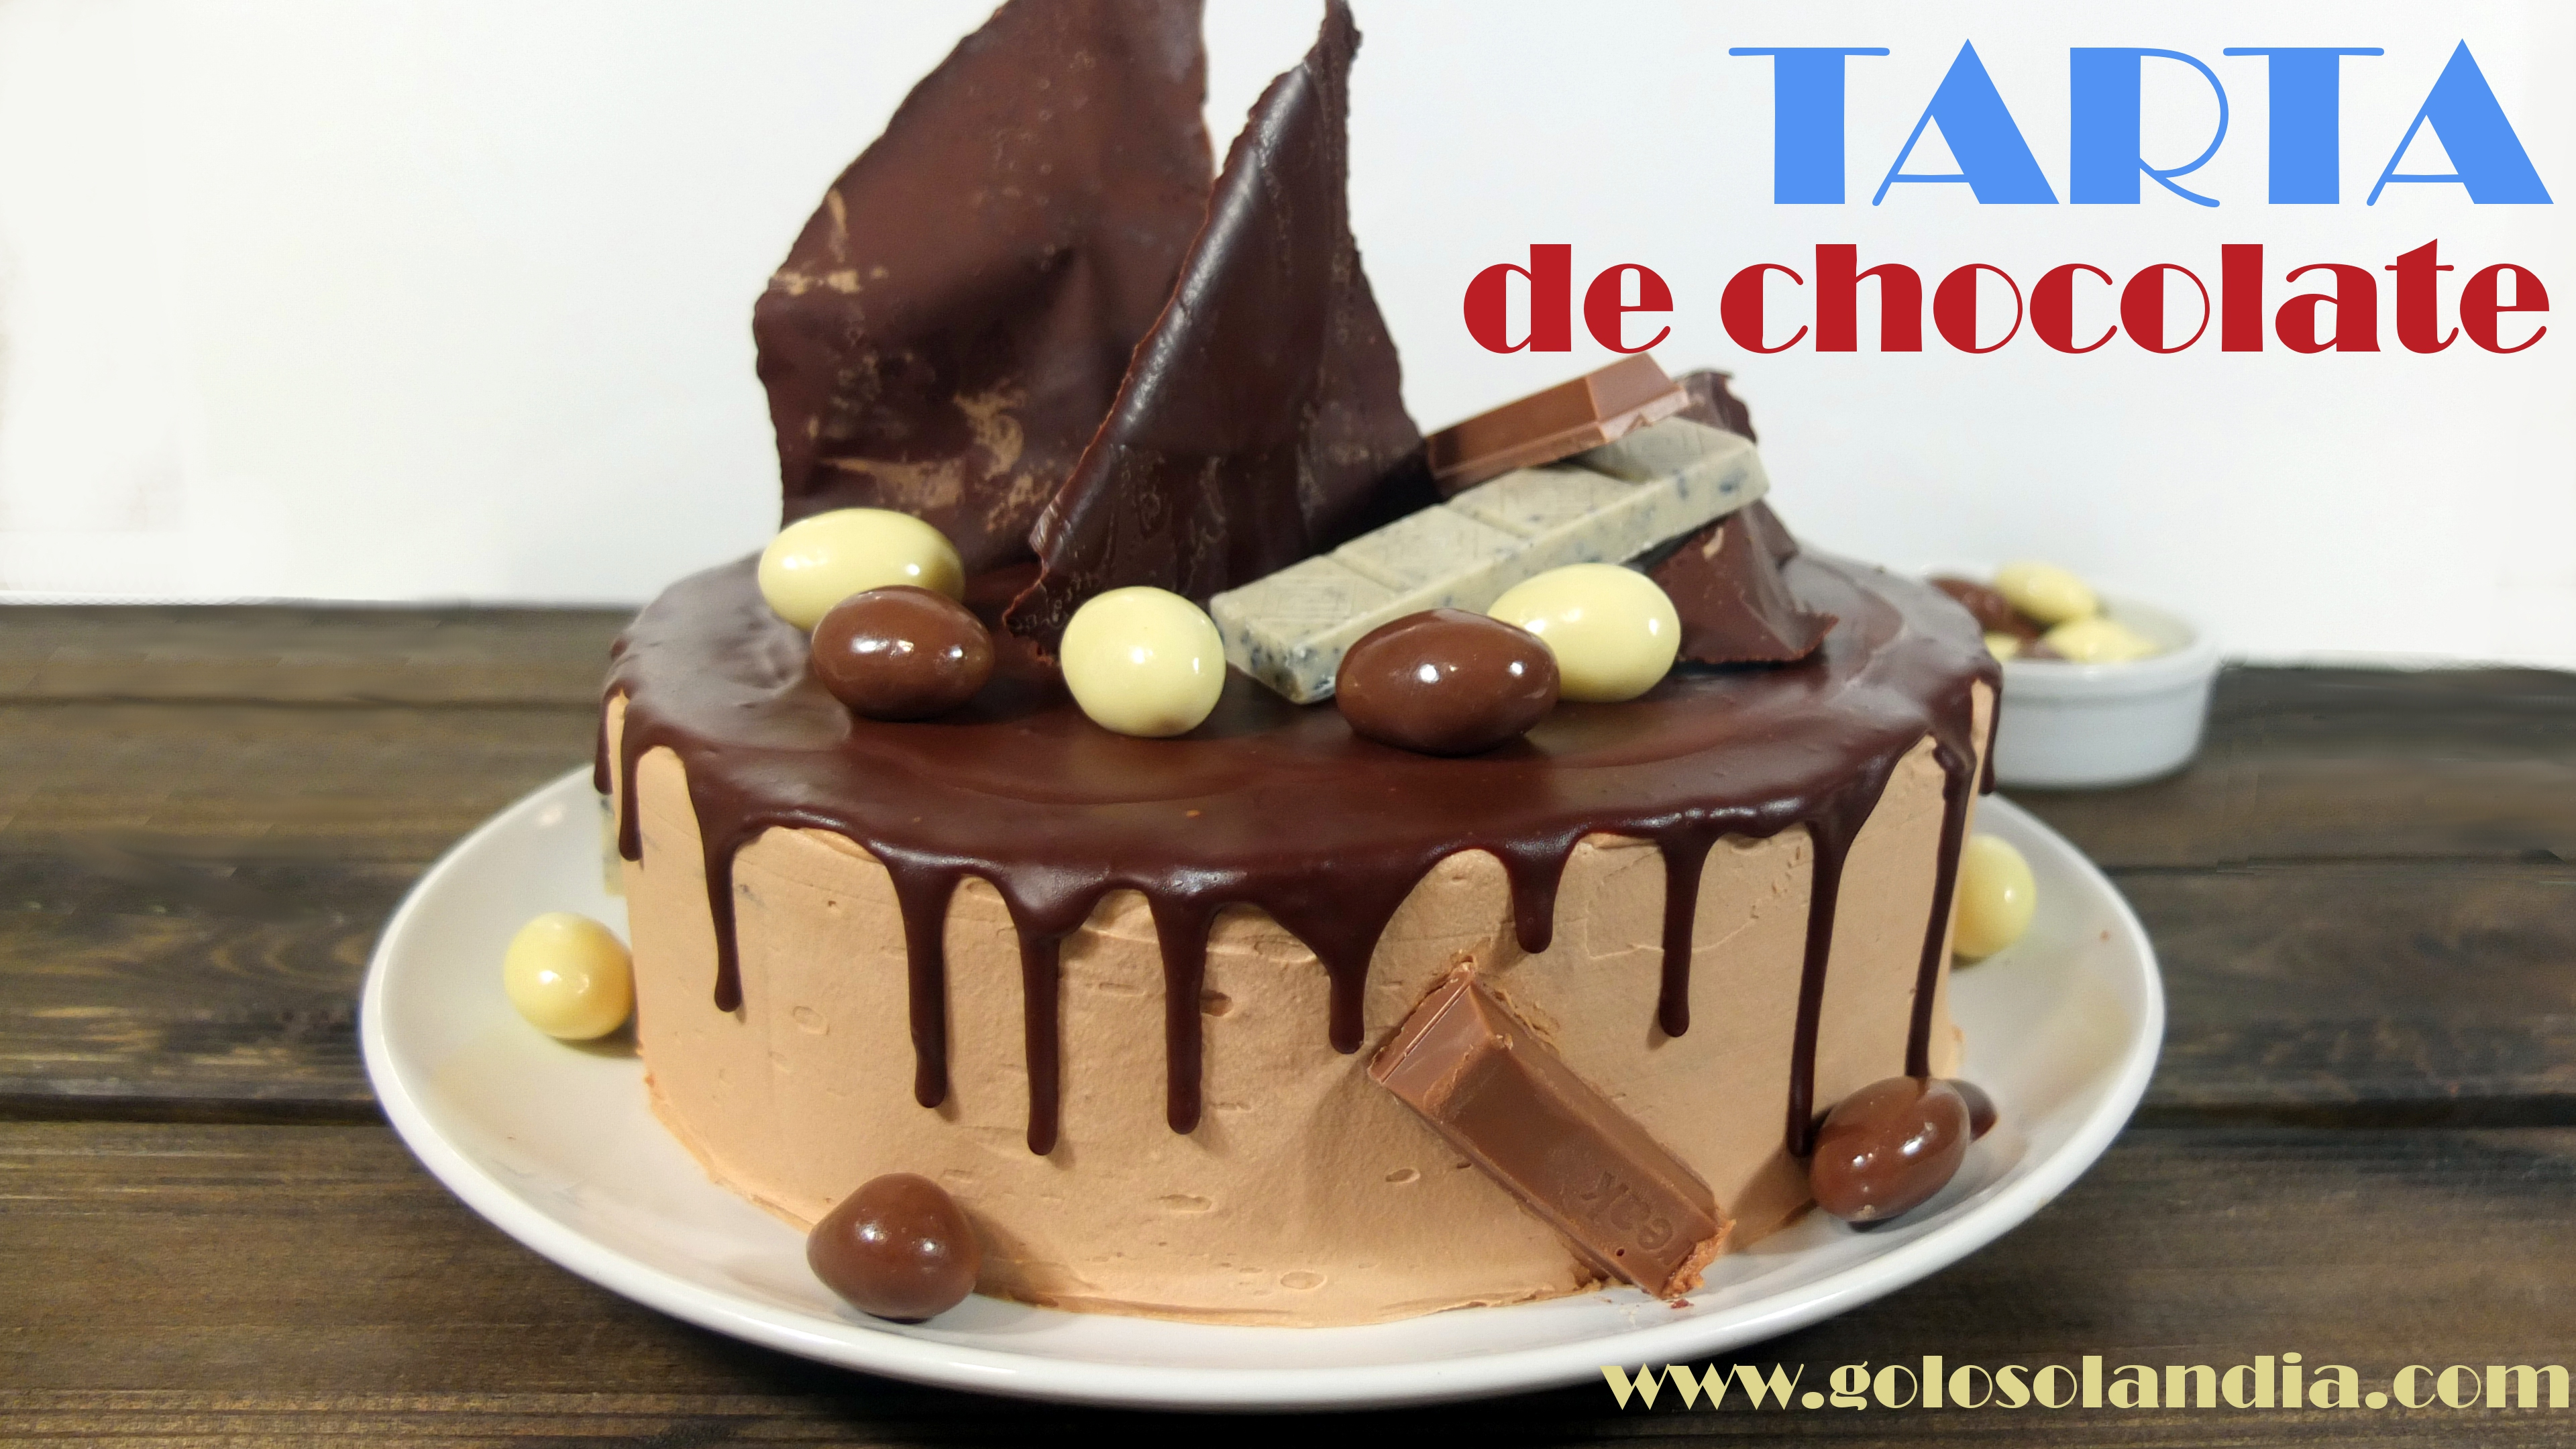 Tarta de chocolate decorada